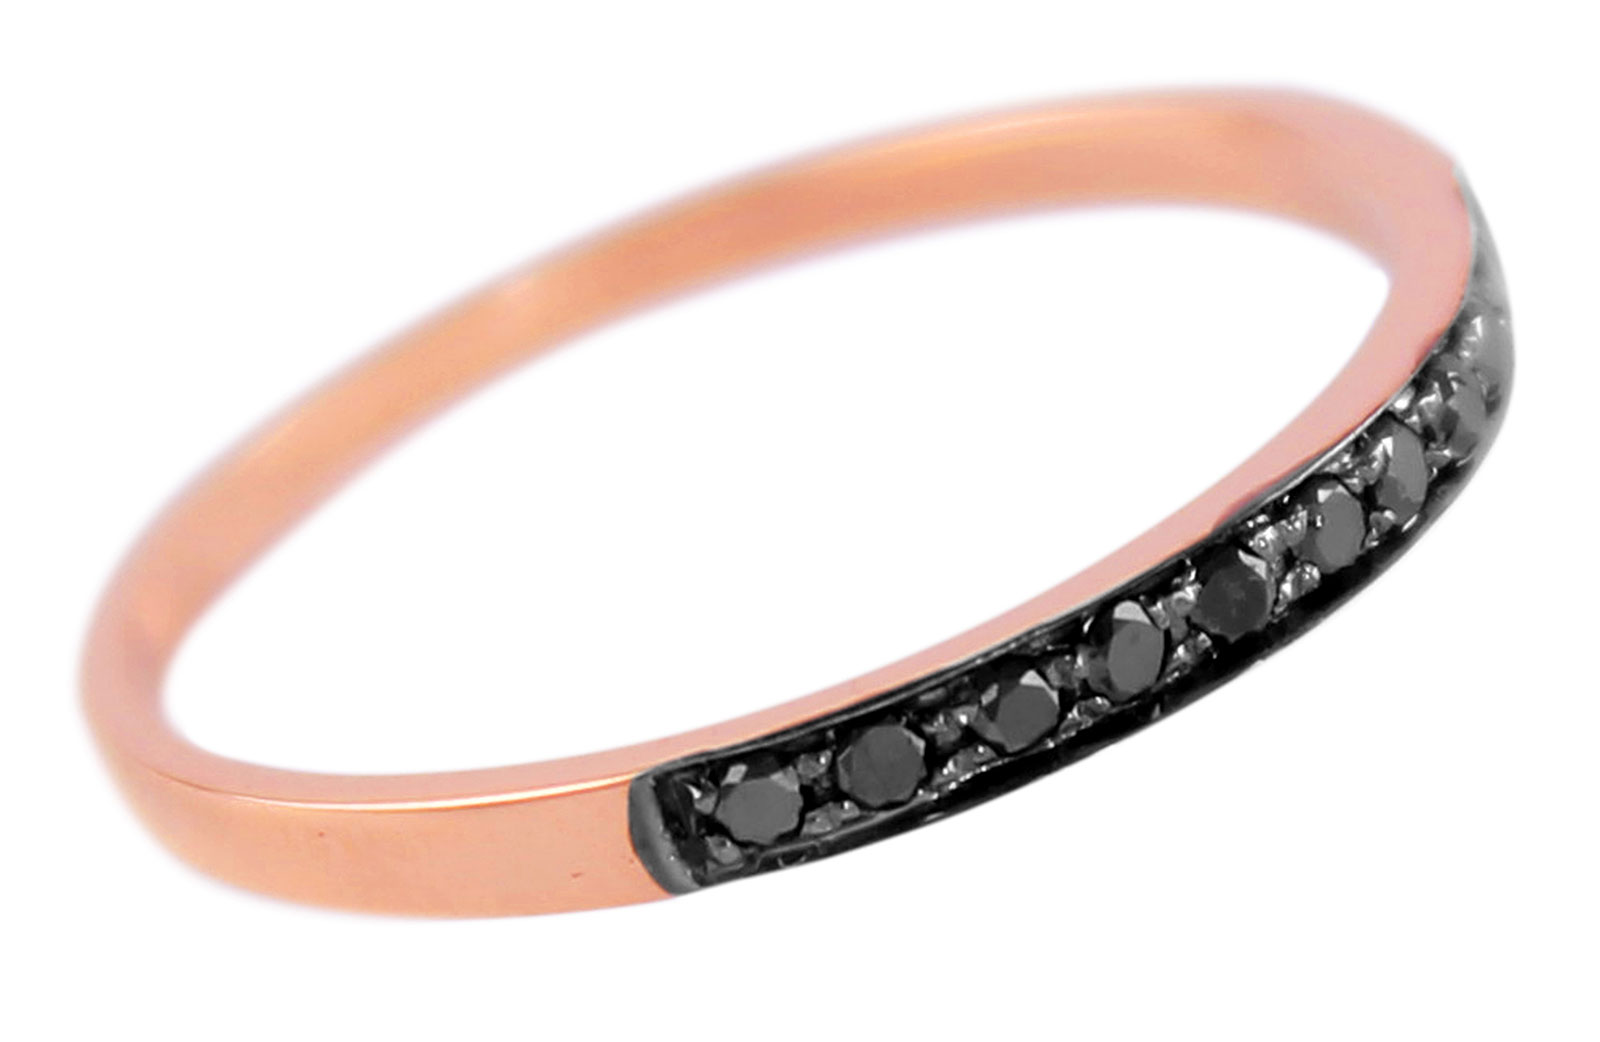 Vera Perla 18K Solid Black and Rose Gold 0.10Cts Genuine Diamonds Eternity Band Ring -Size 6.5 US